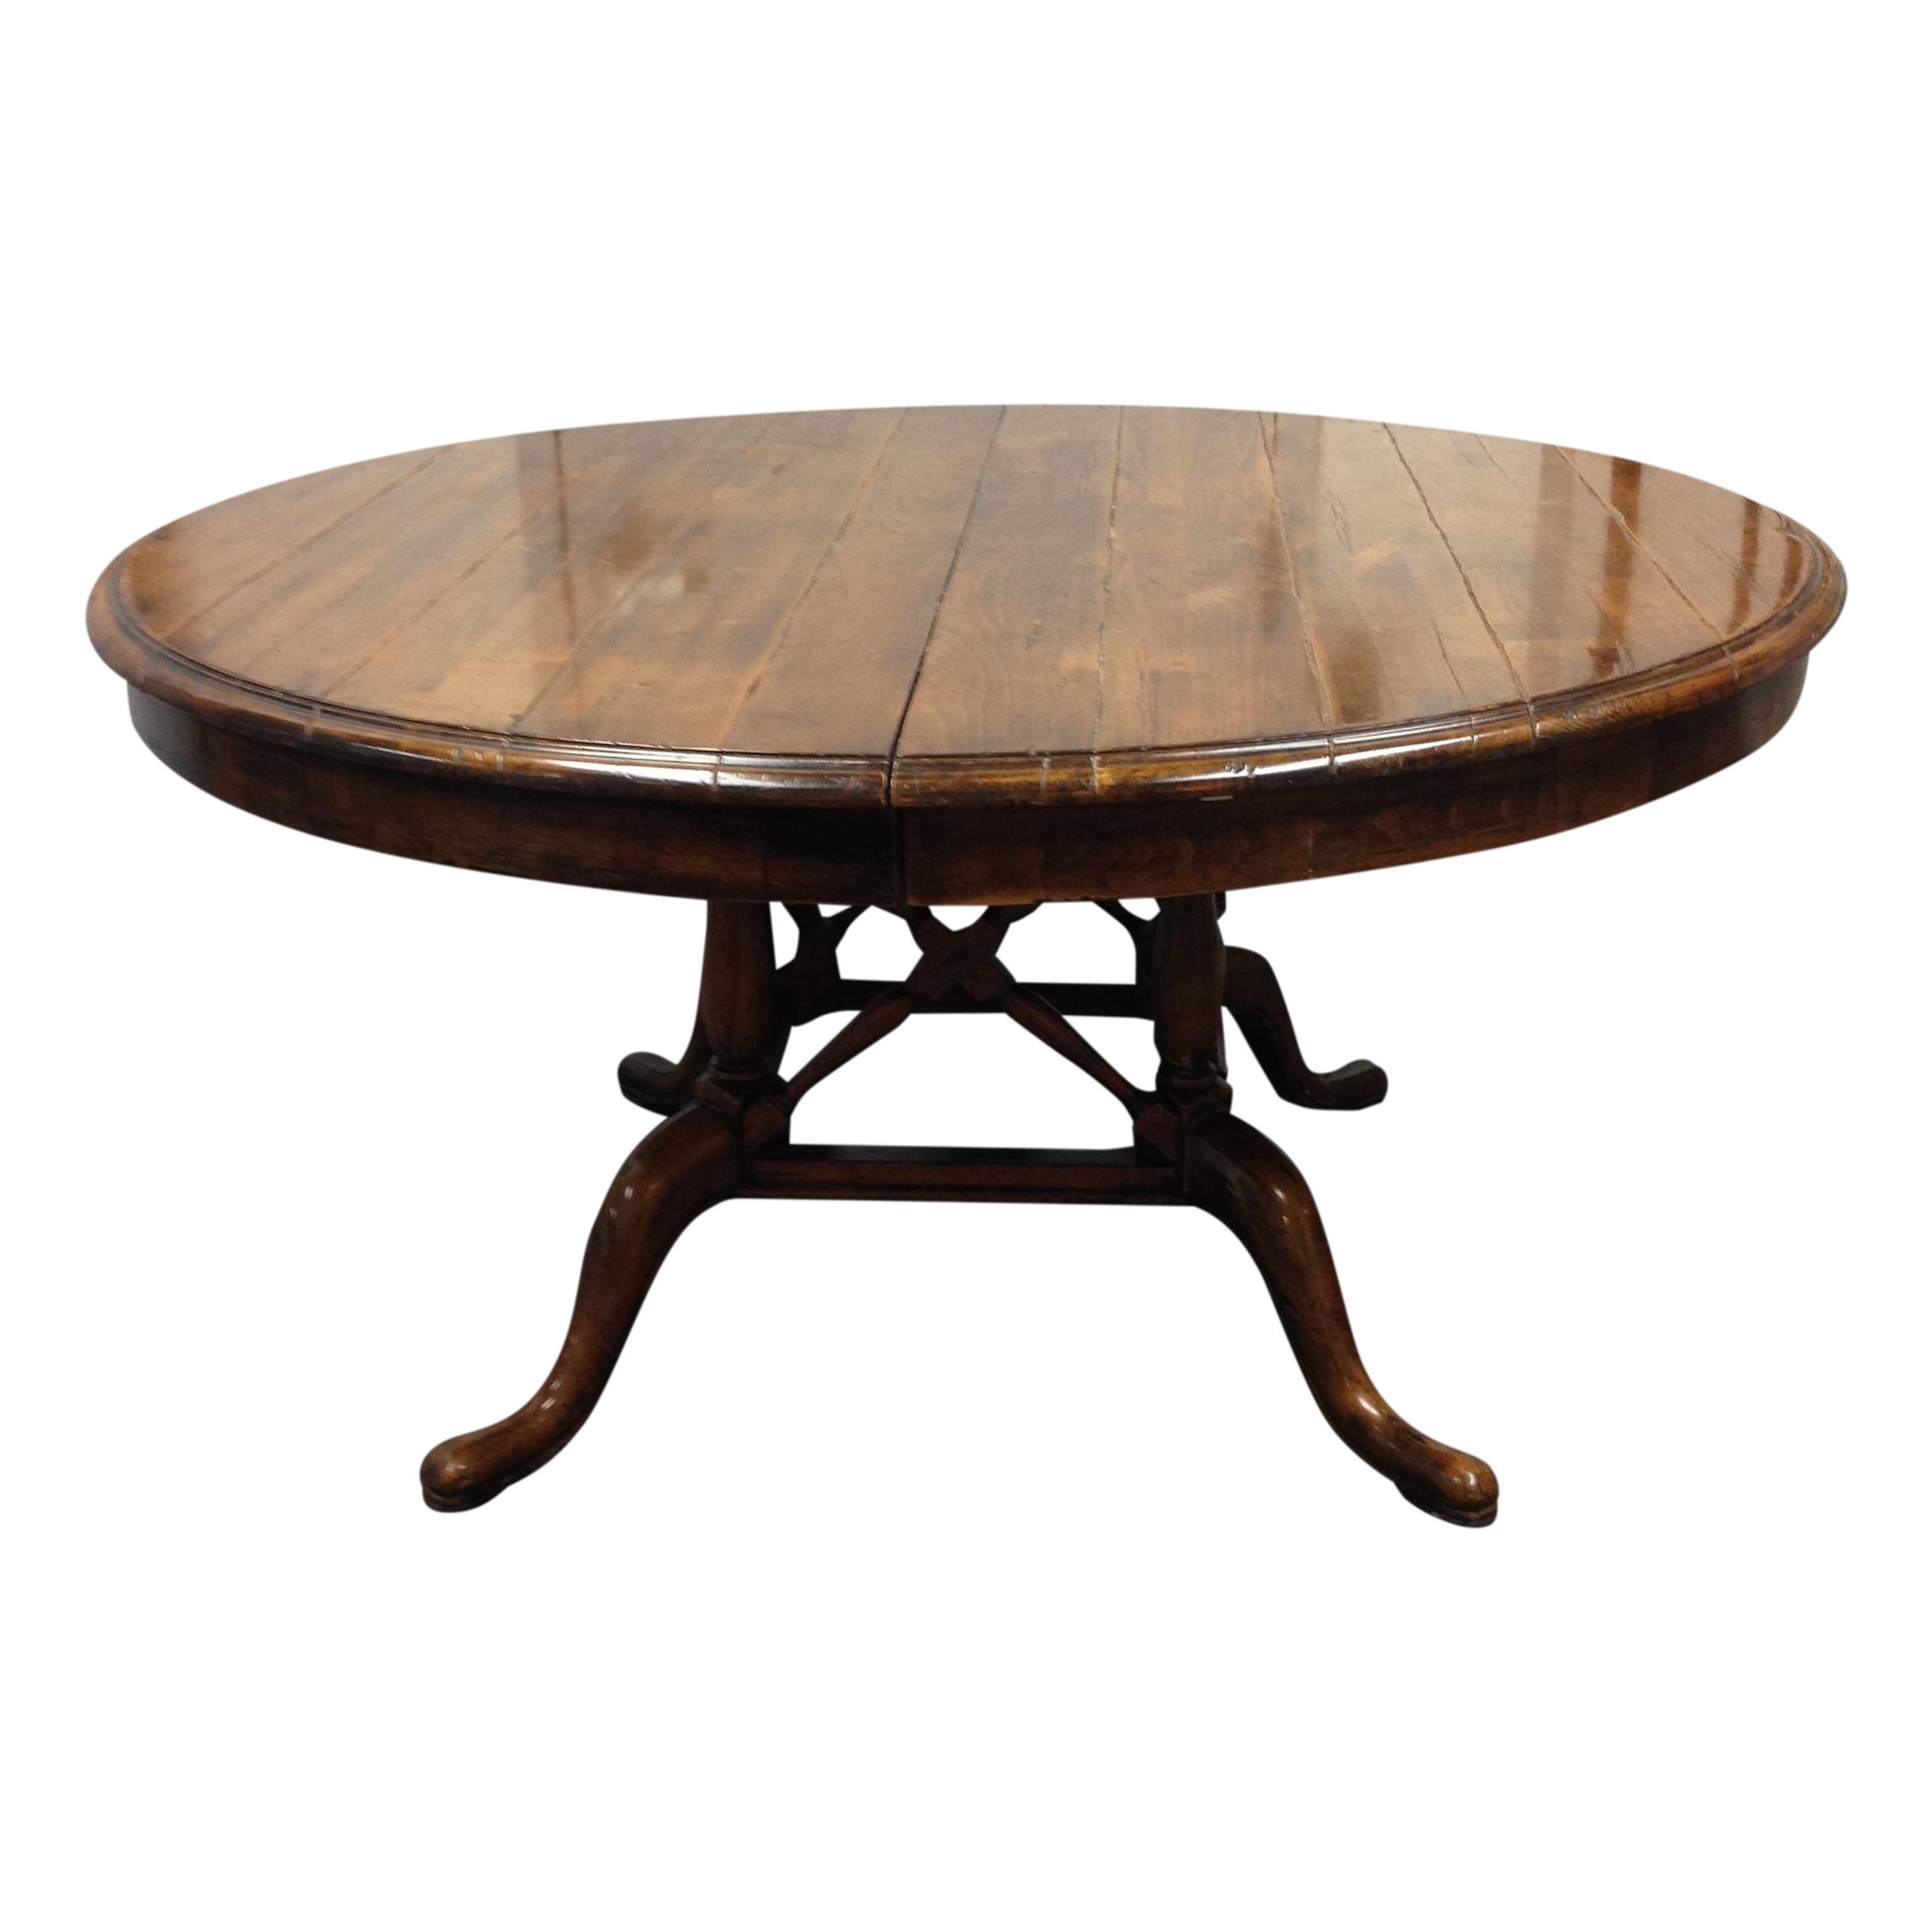 Fashionable round dining table with leaf 60 inch round dining table + leaf - design plus gallery gixrnly